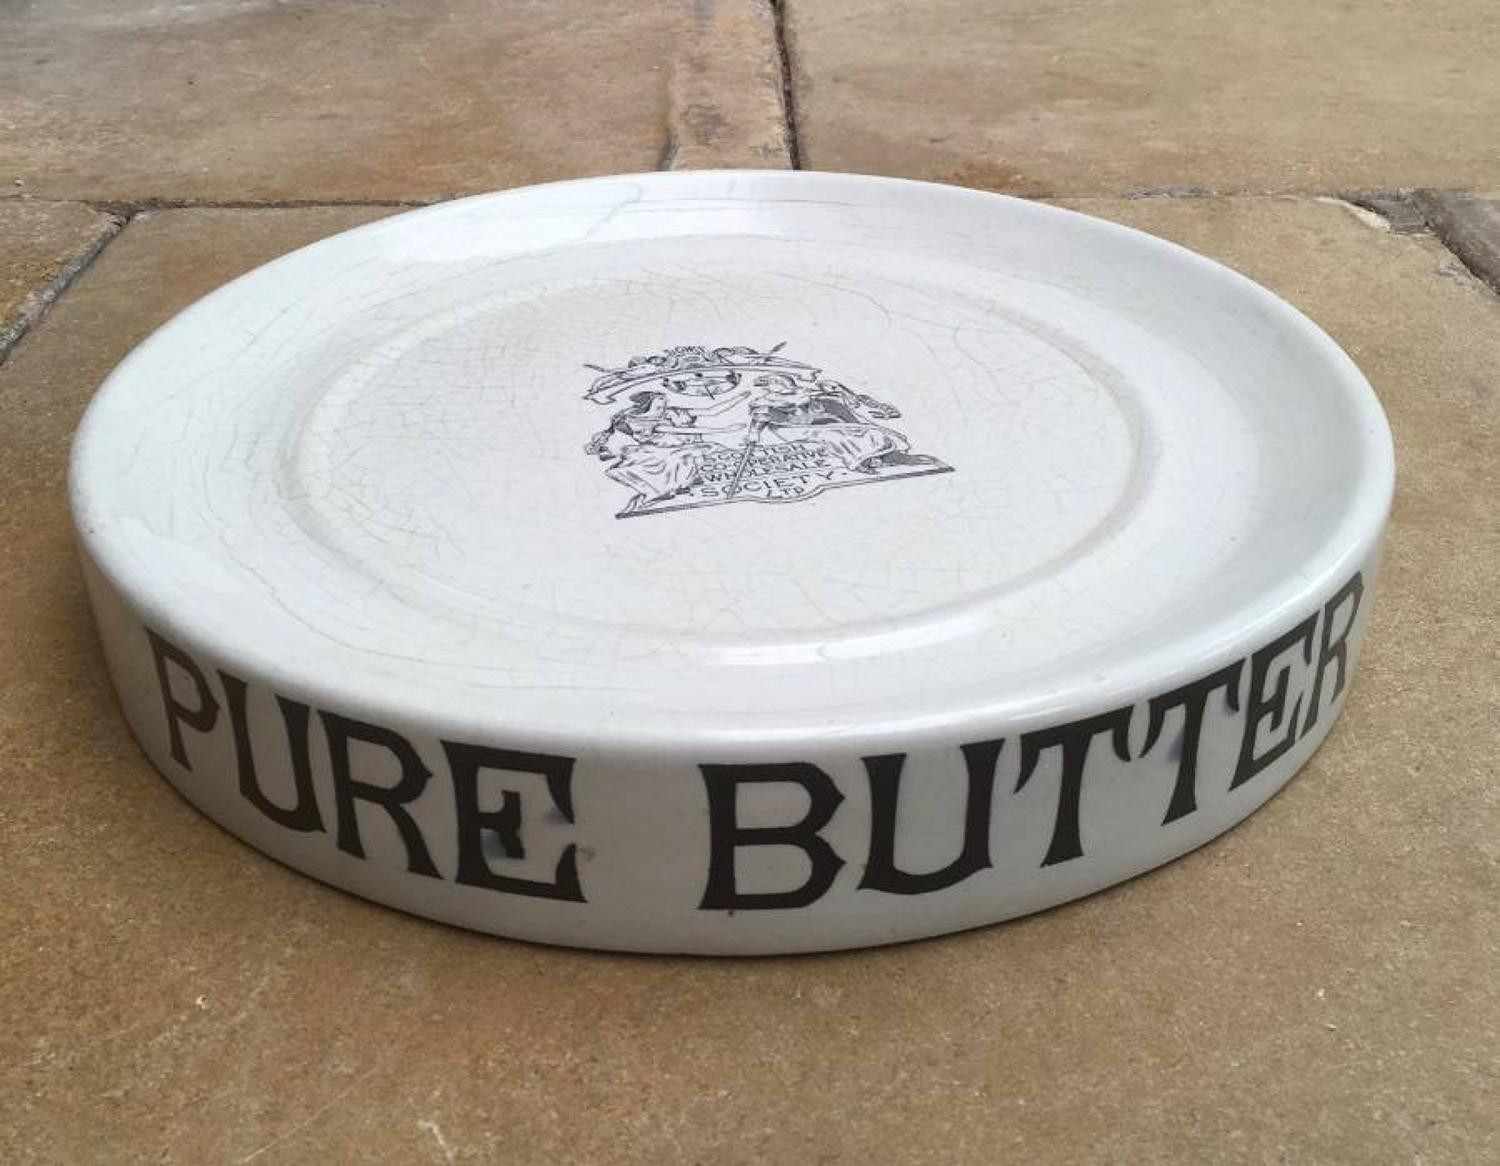 Edwardian Pure Butter Slab - Central Stamp for Scottish Co-Operative S